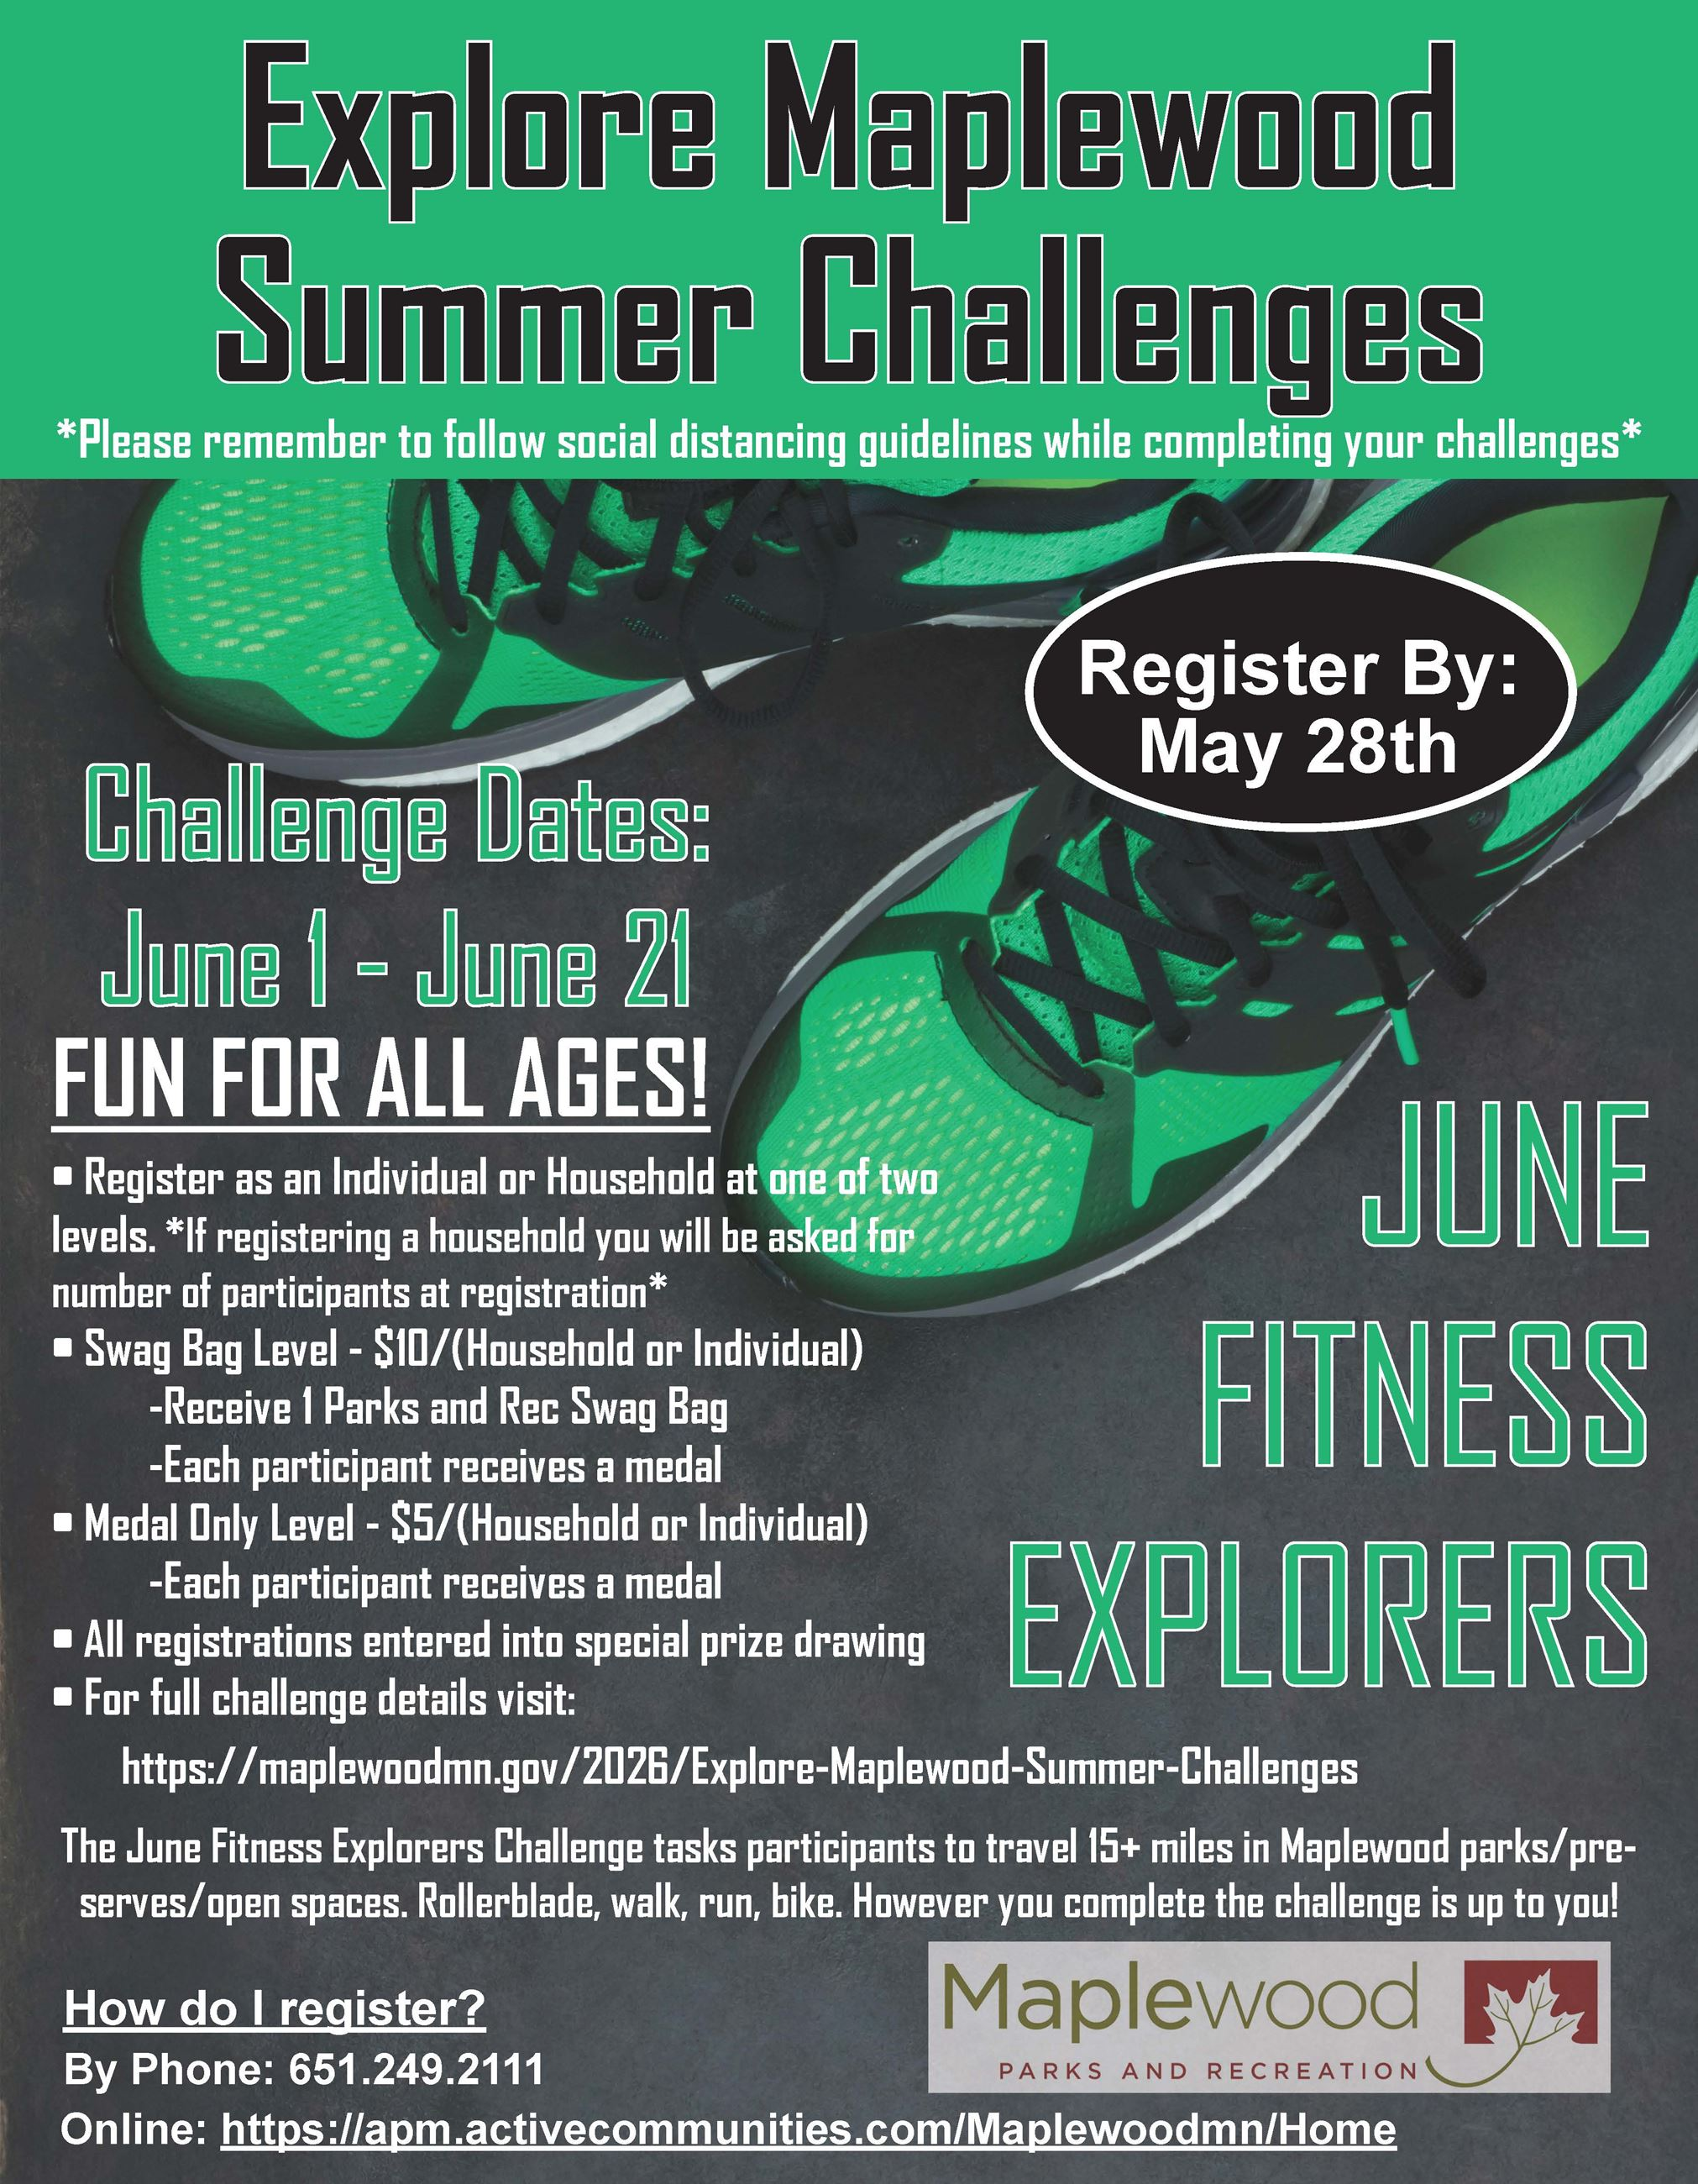 June Fitness Explorers, June 1-21, sign up as an individual or as a team, cost $5-$10, win prizes